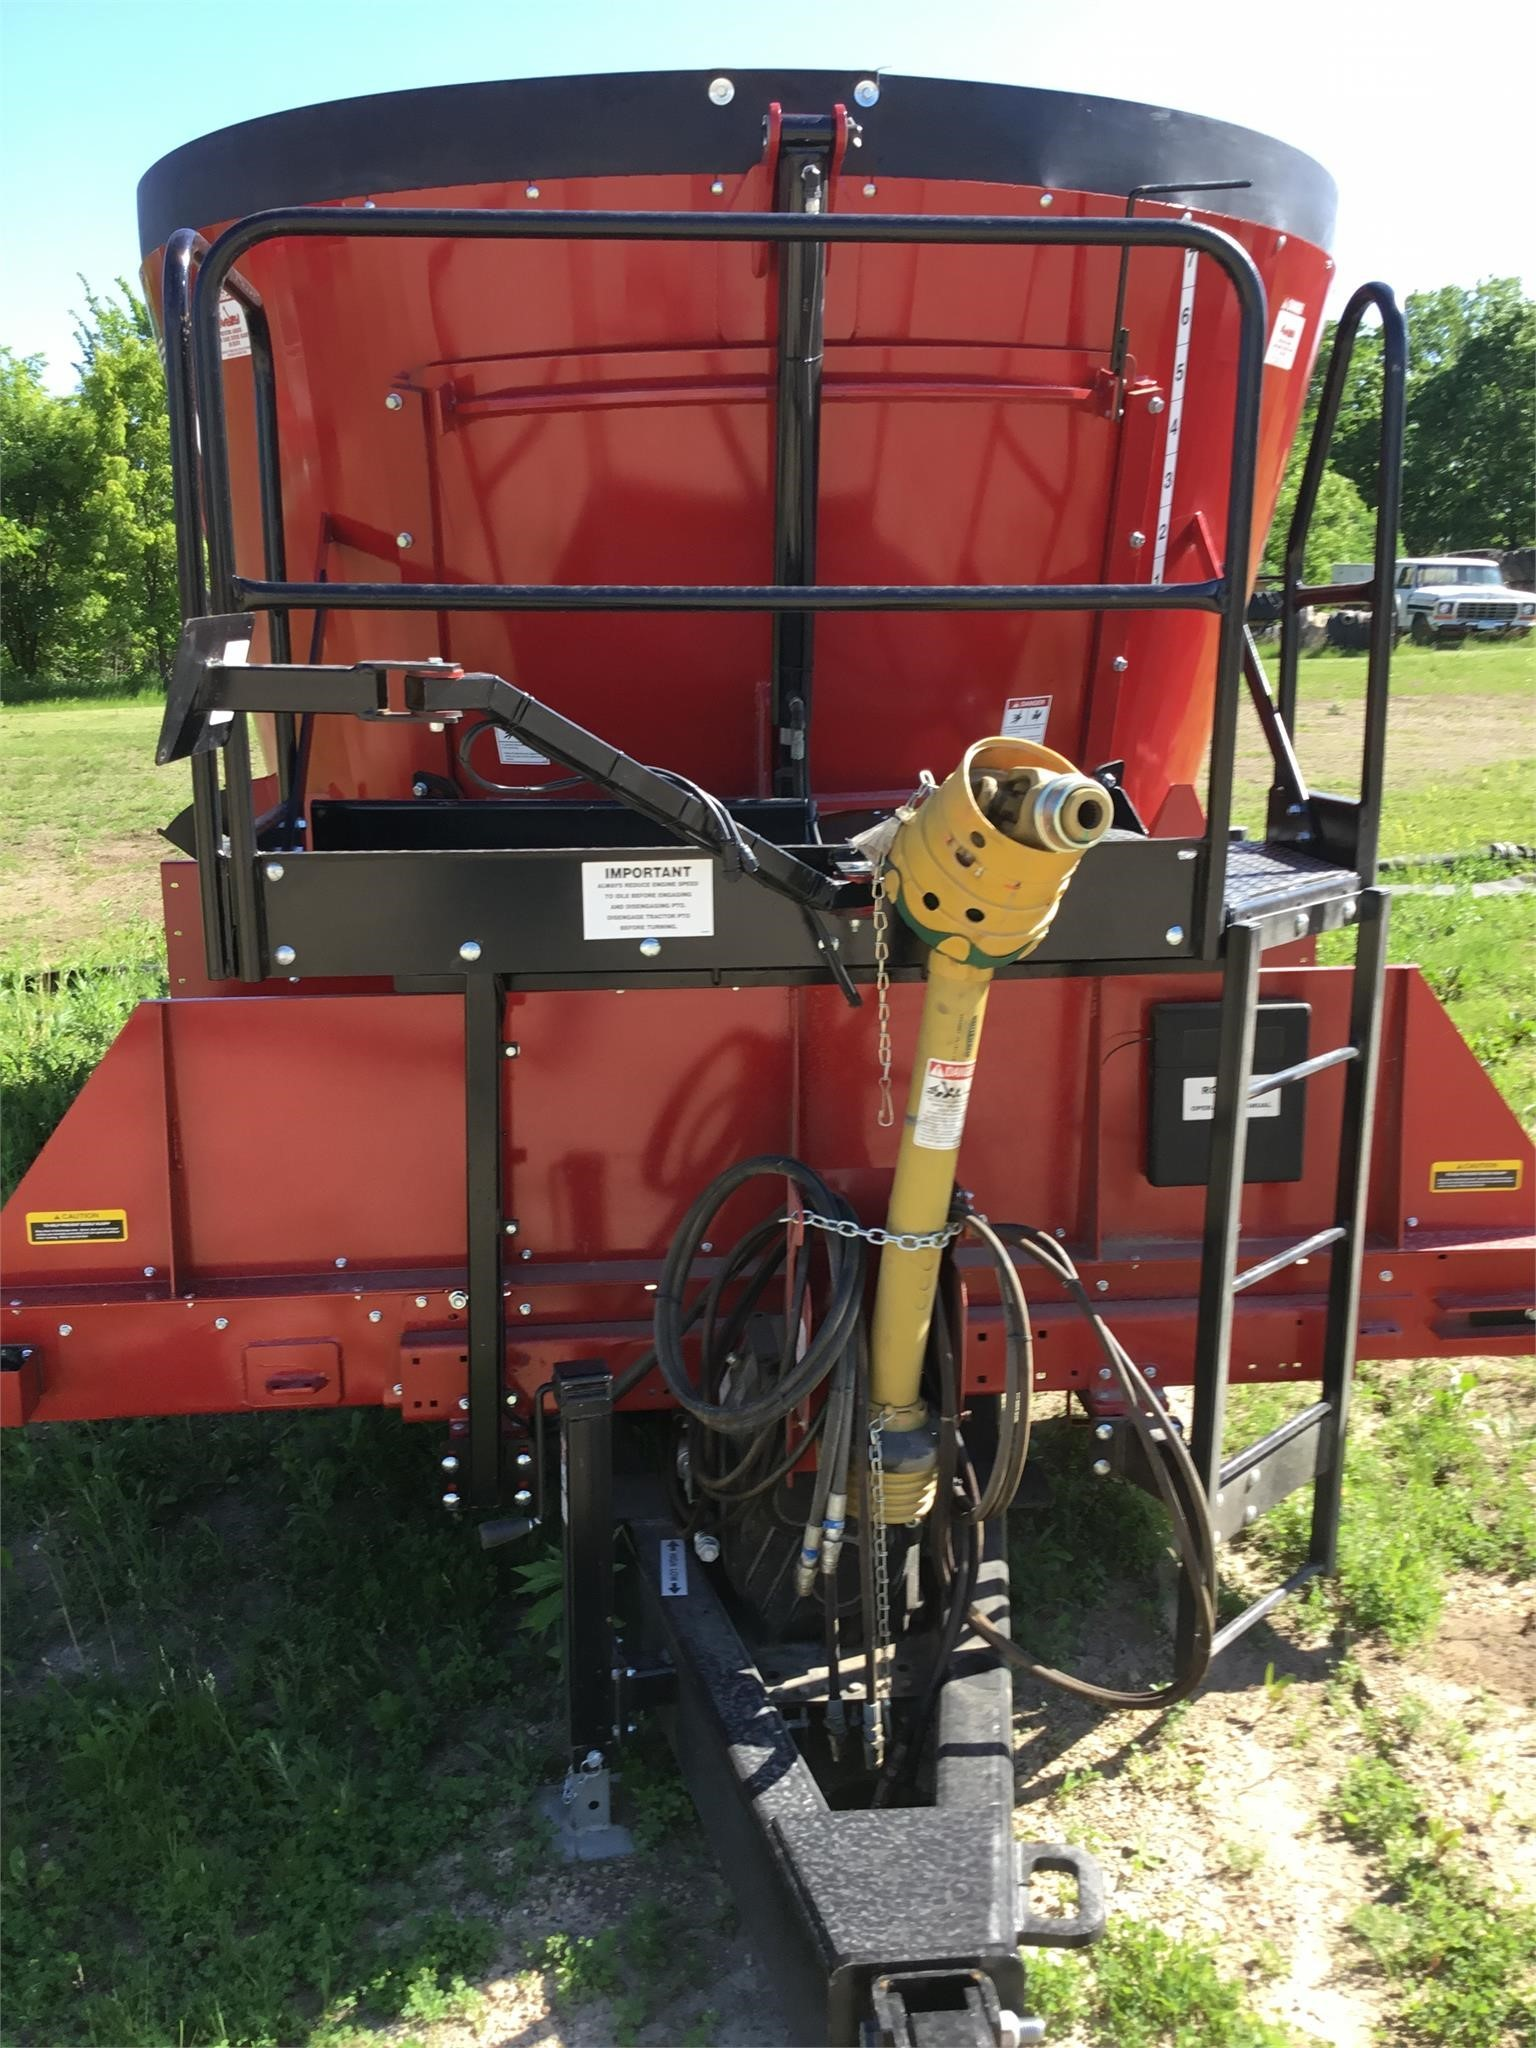 2020 Roto Mix 625 Grinders and Mixer